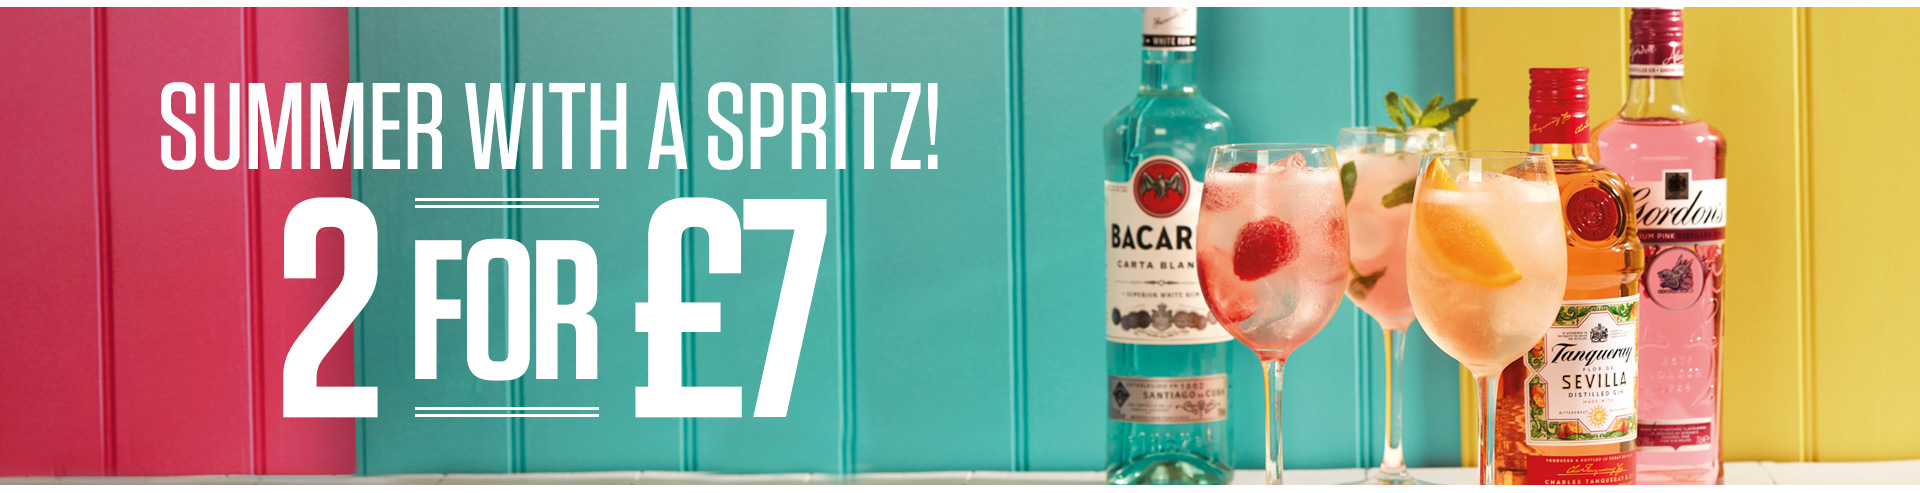 suburban-summerdrinks-offer-spritz-eng-pbD-banner.jpg